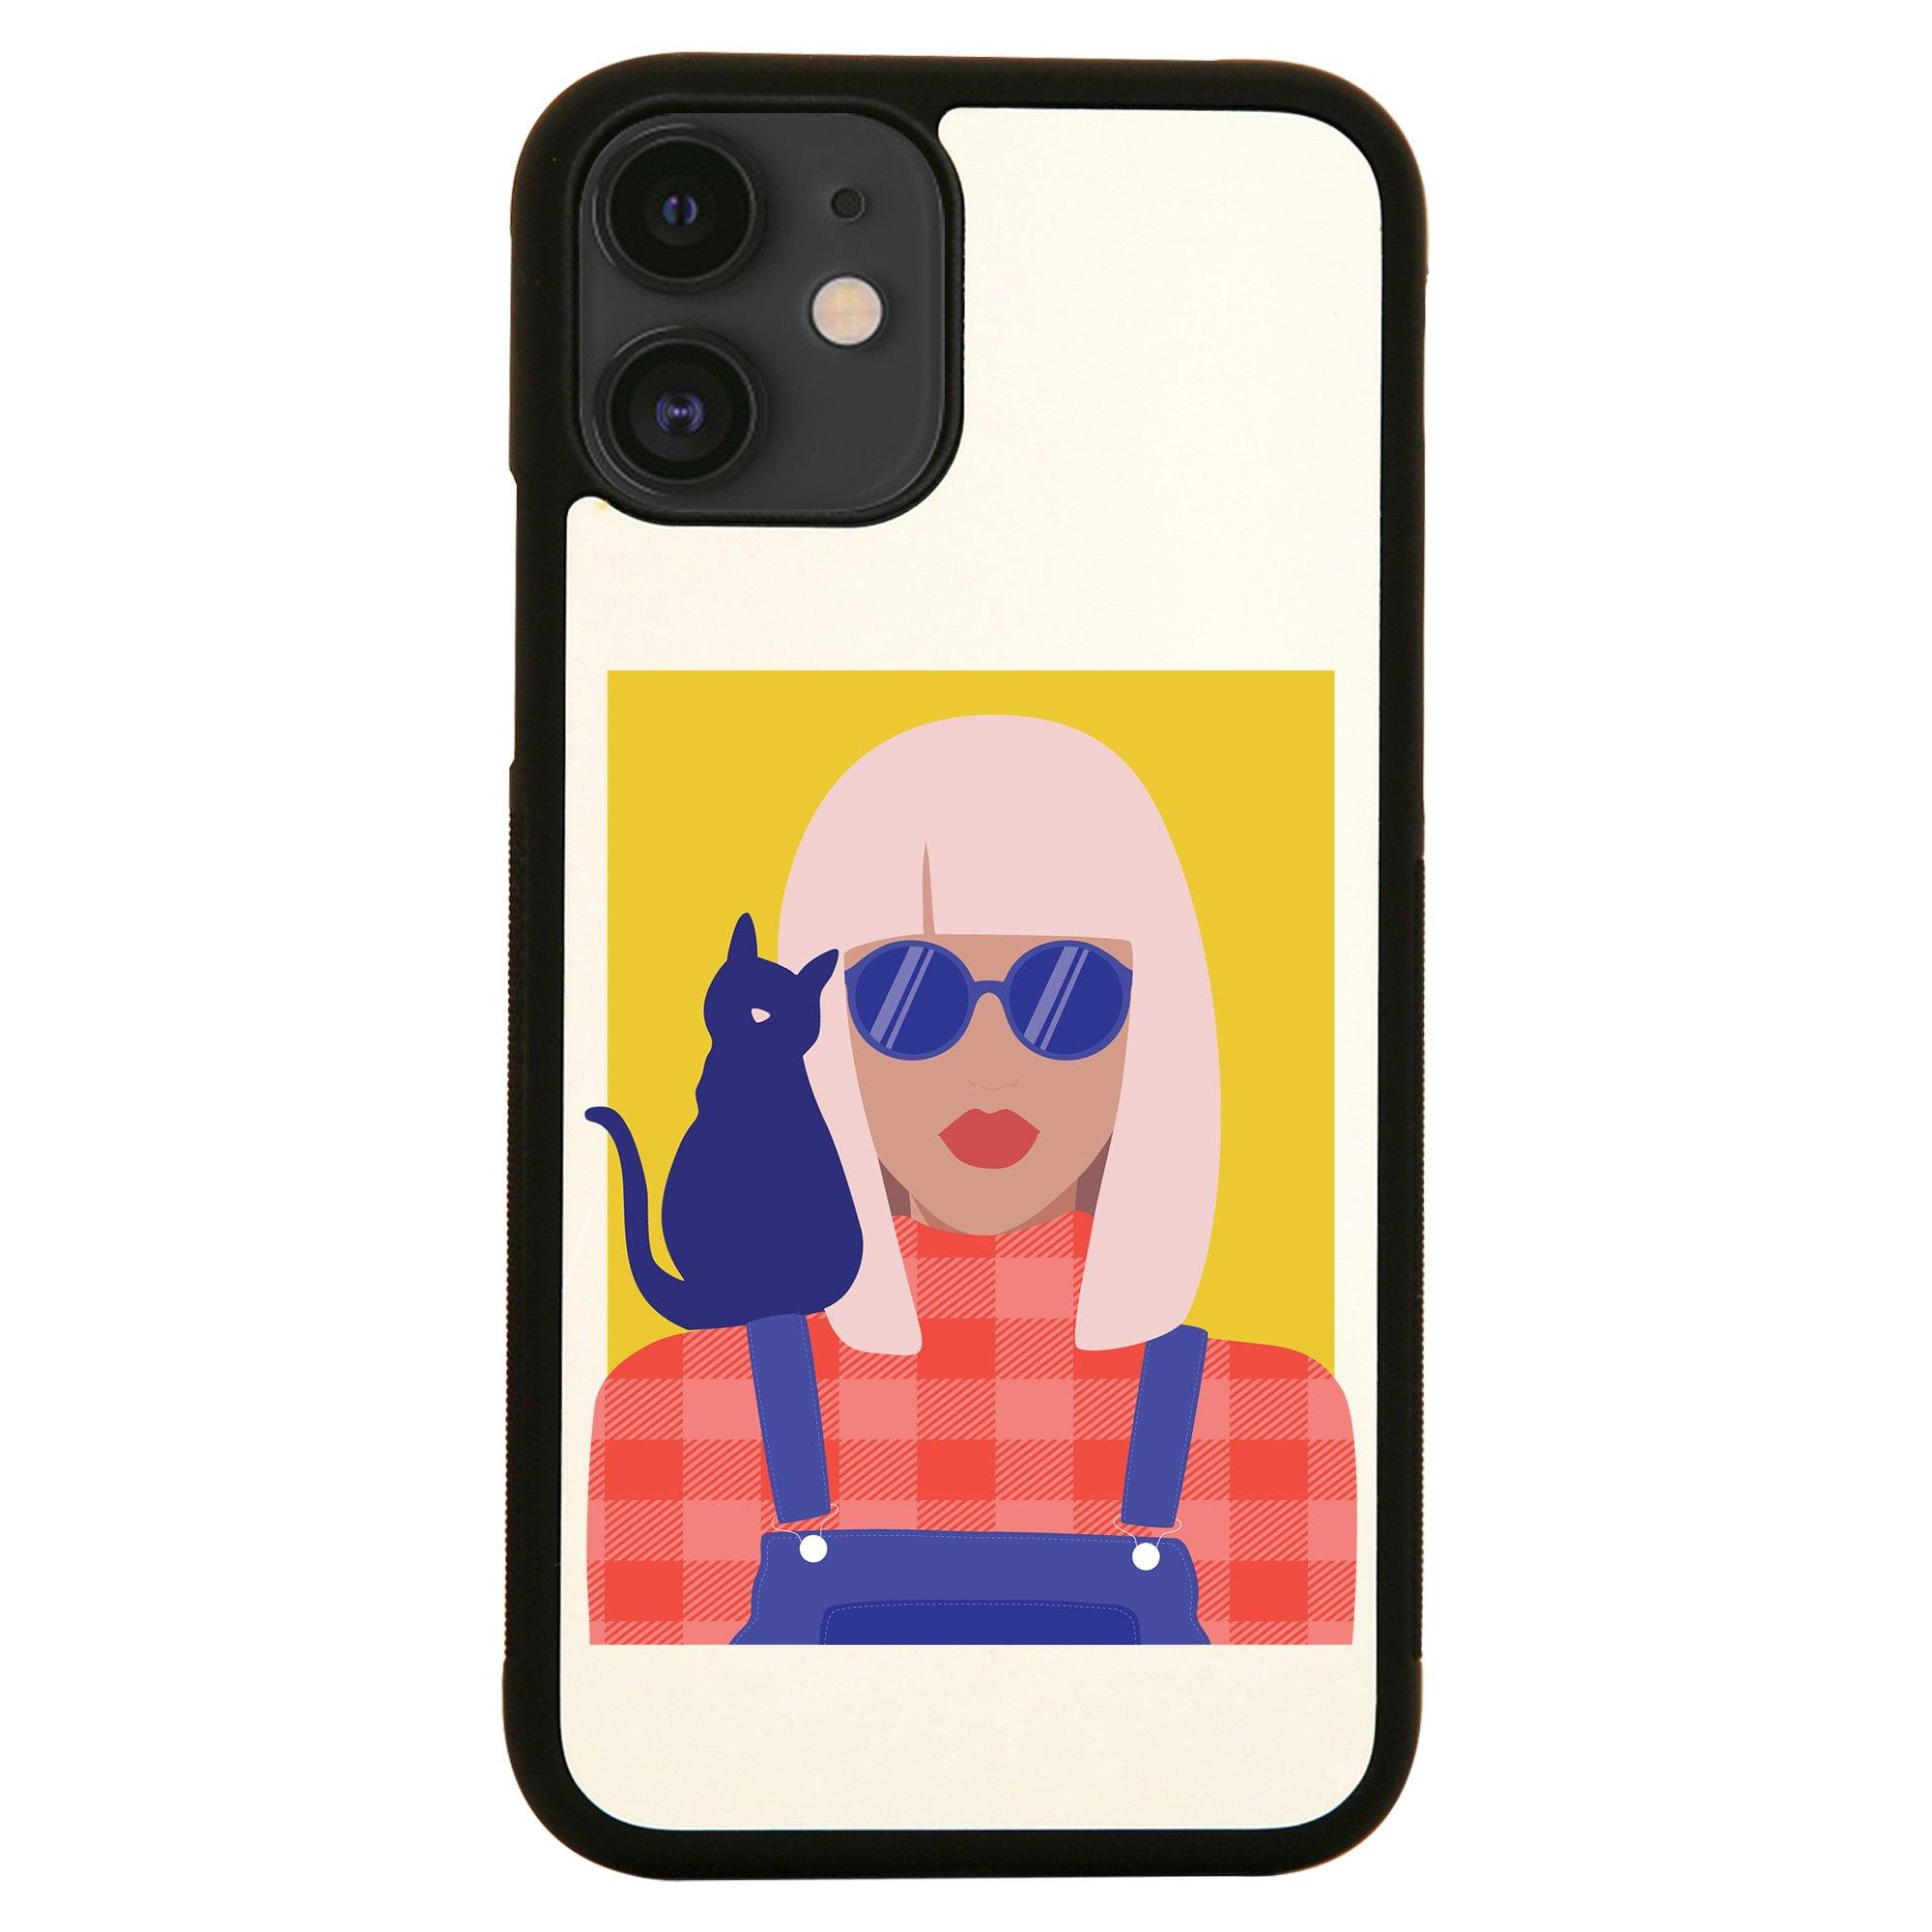 Stylish girl with cat illustration graphic case cover for iPhone ...